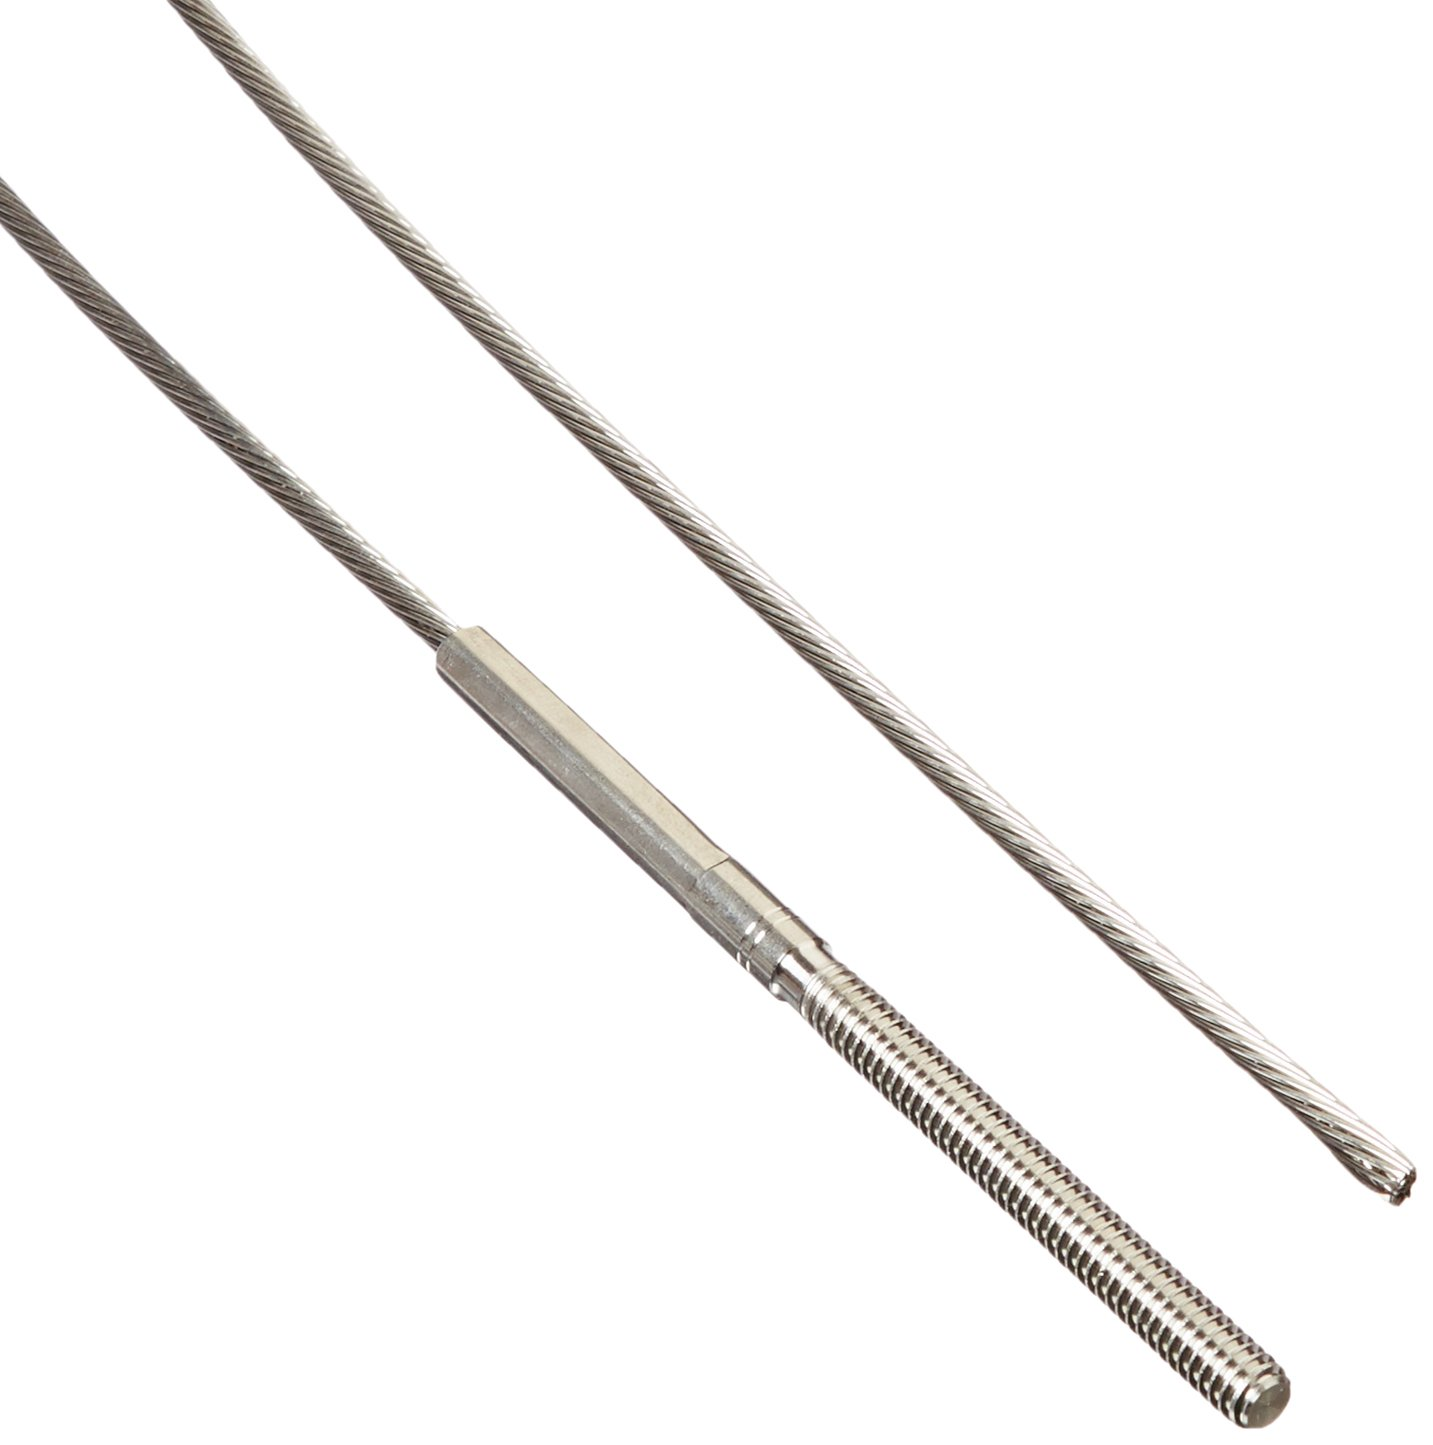 Feeney CR-6215 Cablerail Assemblies for Metal with 4 1/4'' Terminal, 1/8'', 15' (Pack of 1)